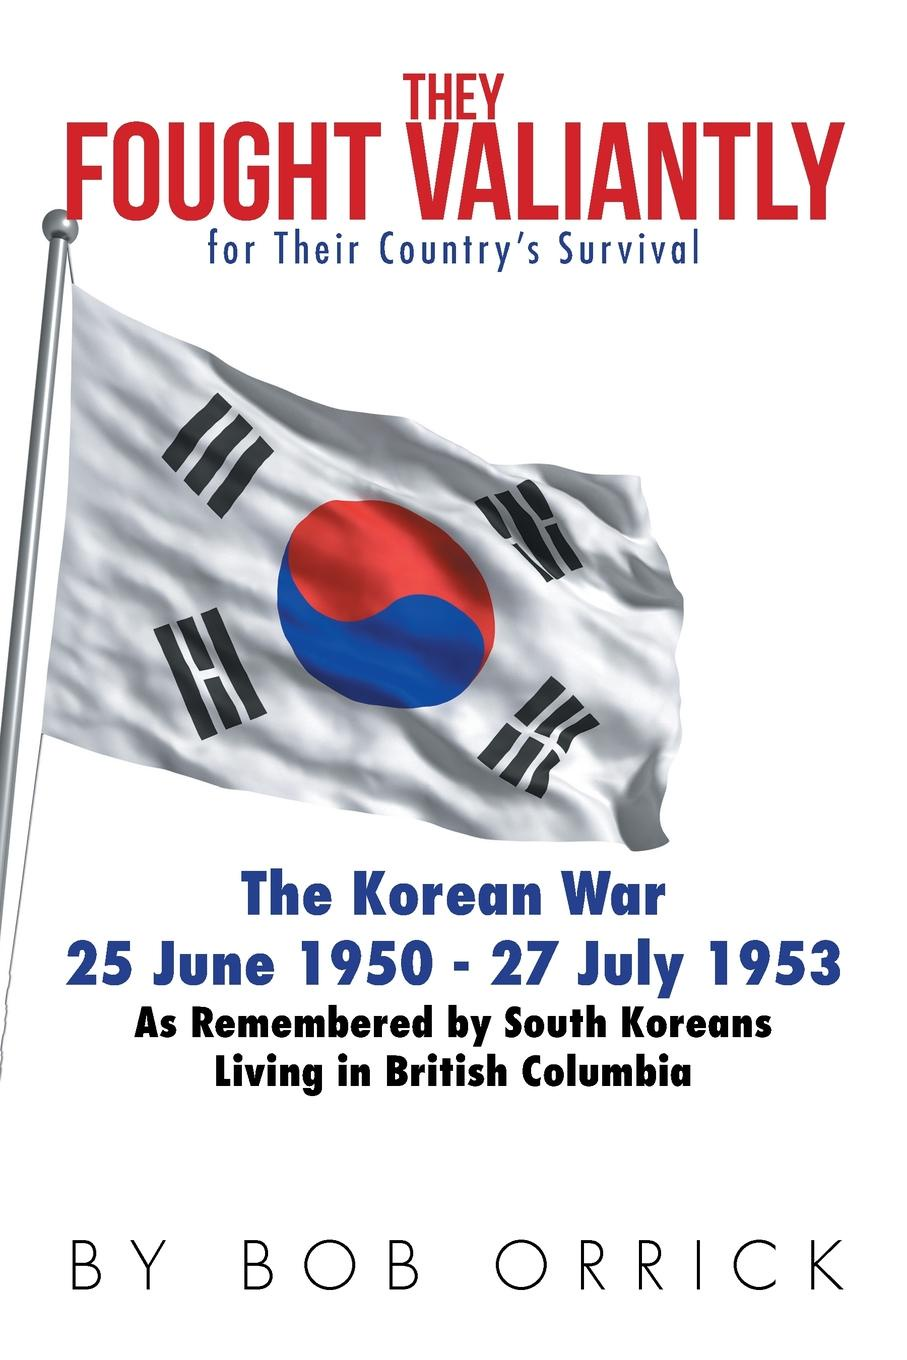 Bob Orrick They Fought Valiantly for Their Countrys Survival. The Korean War 25 June 1950 - 27 July 1953 As Remembered by South Koreans Living in British Columbia